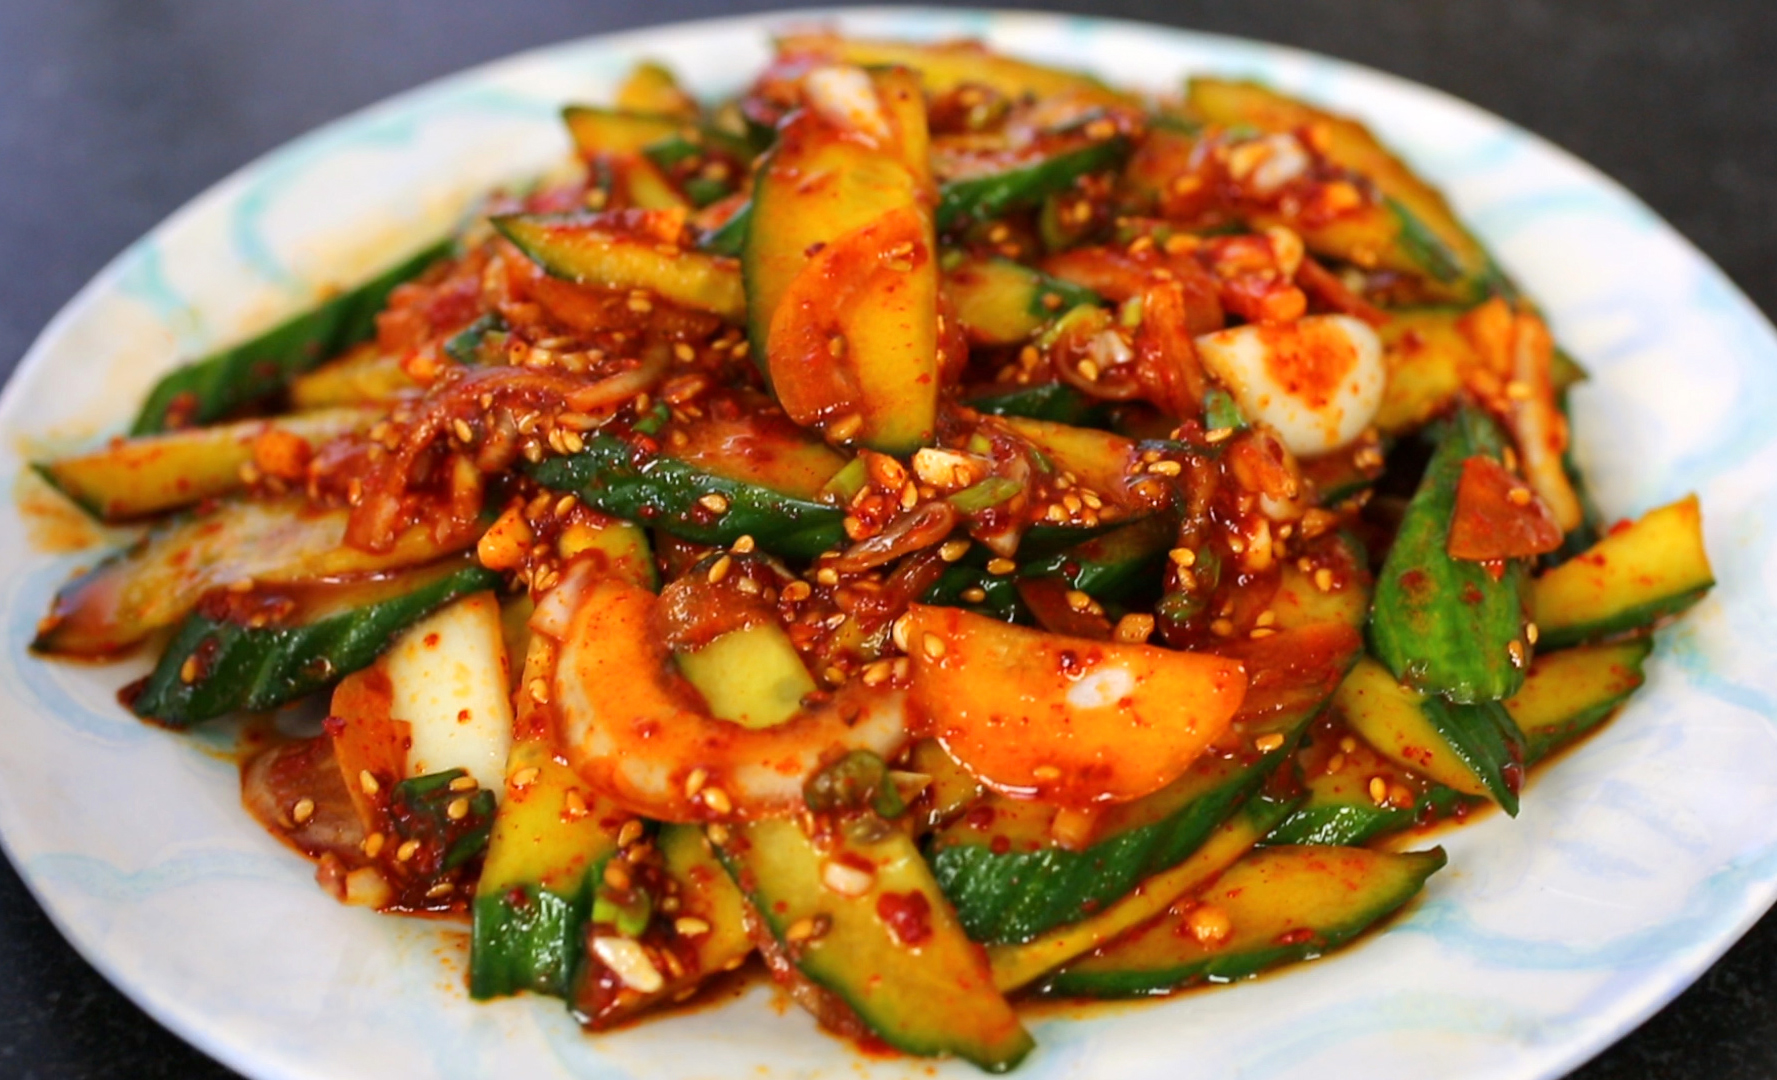 Cuisine Spicy Spicy Cucumber Side Dish Recipe Maangchi